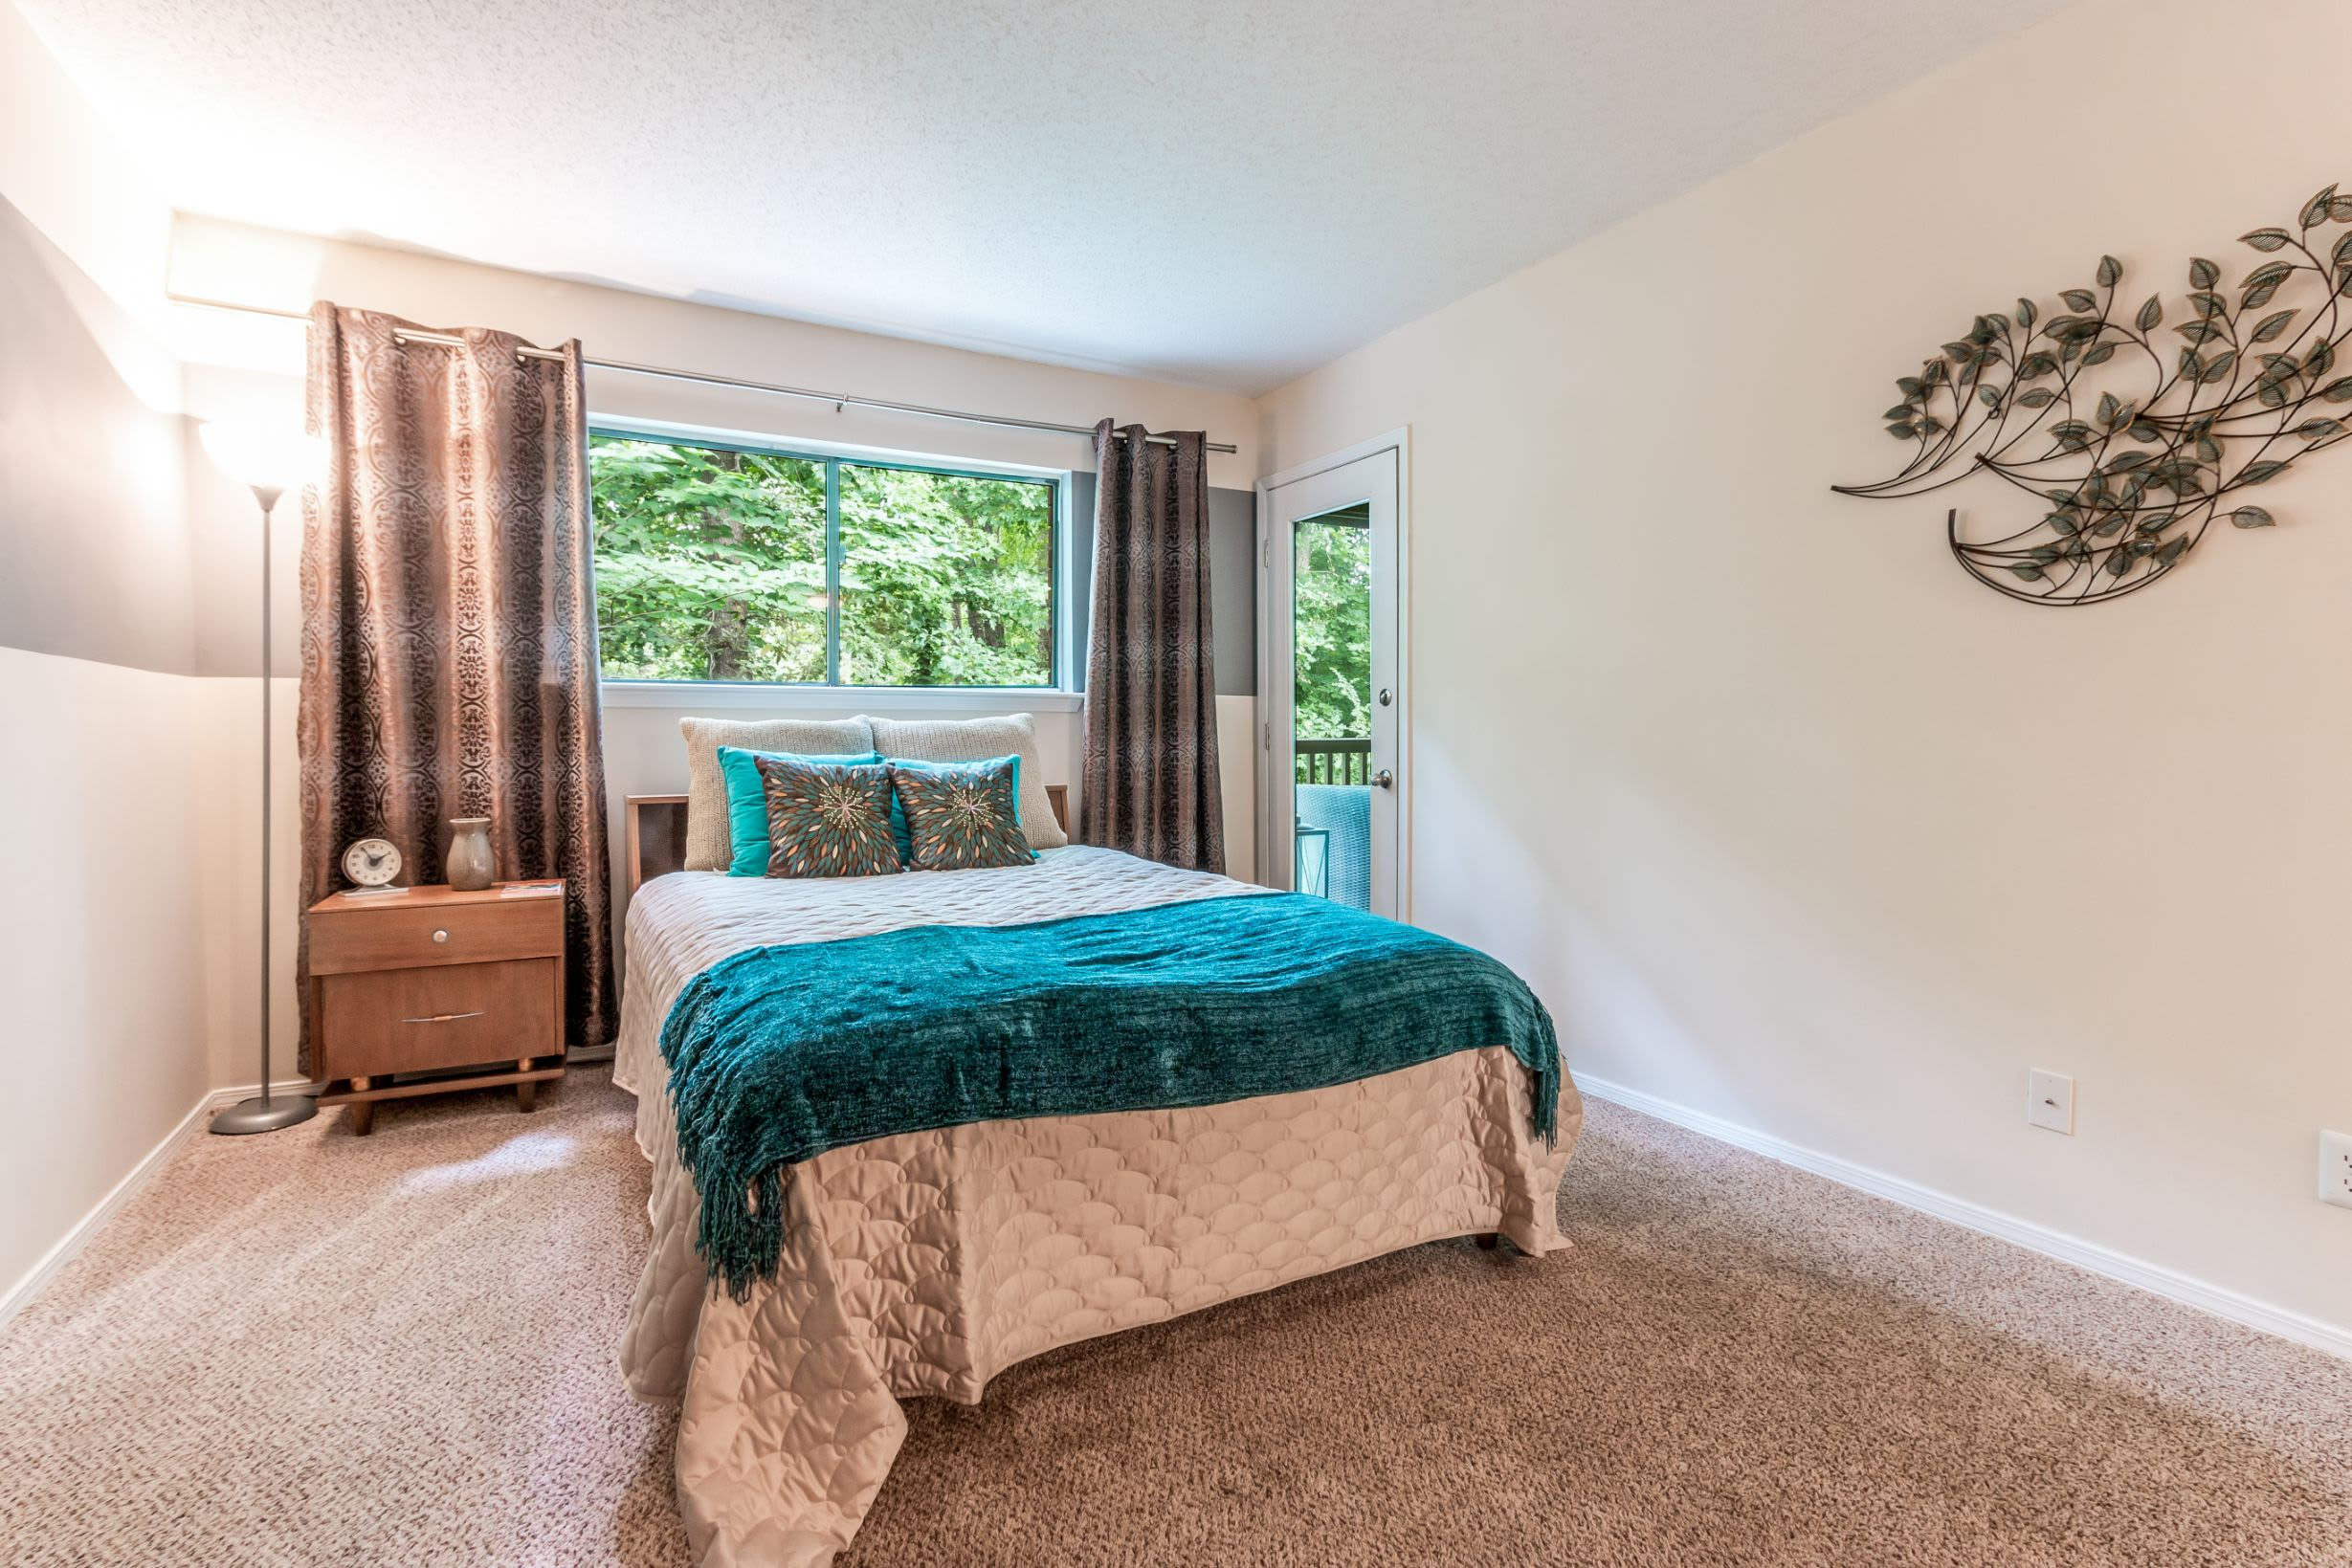 Bedroom with large window at Marquis at Perimeter Center in Atlanta, Georgia